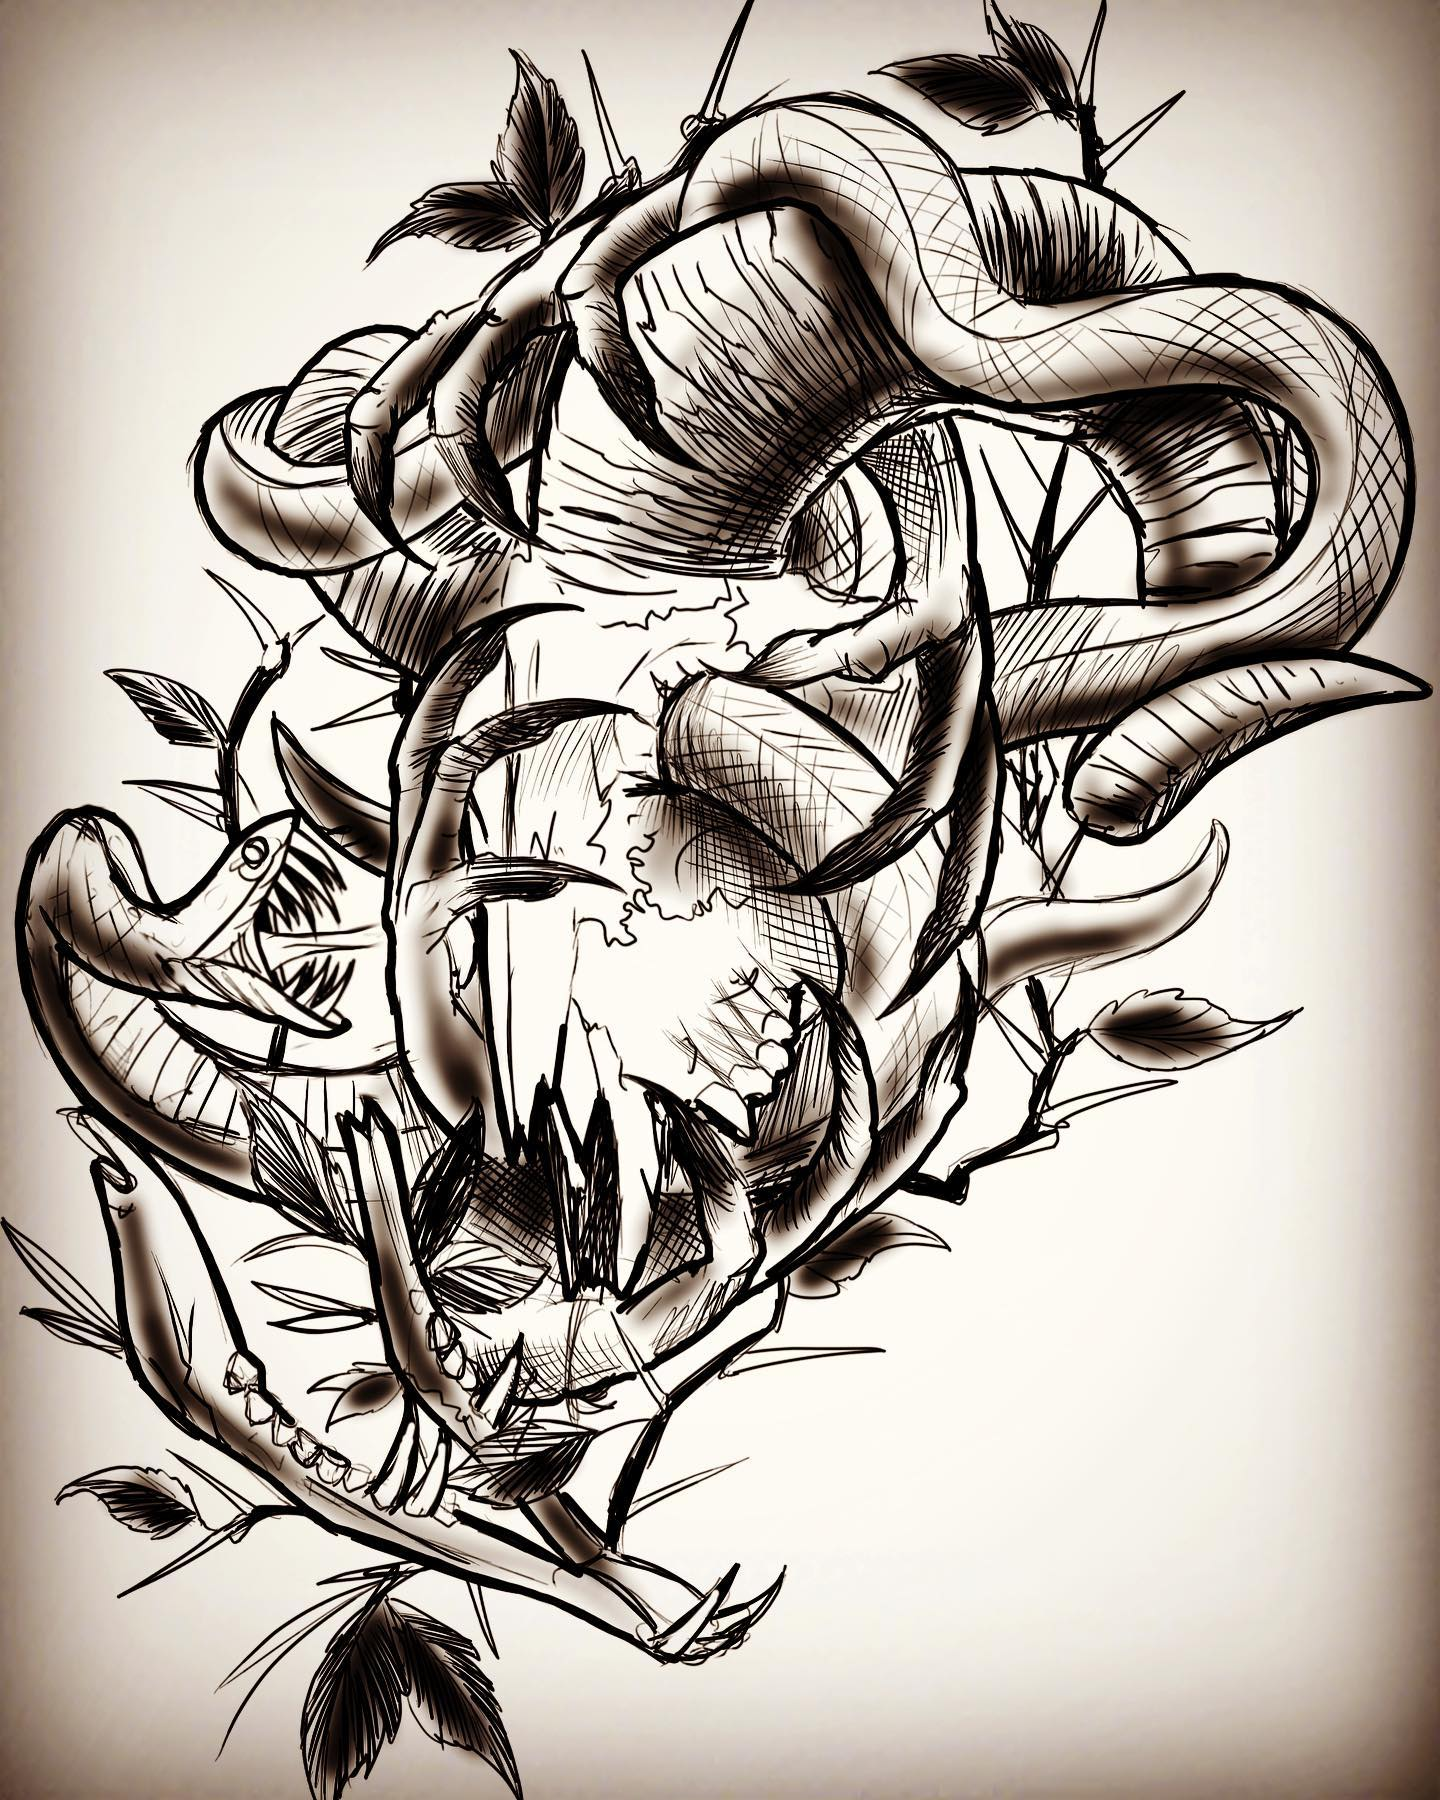 This one is taken but would love to do some darker designs like this once lockdown is over- hit me up if you would like something done like this! Thanks for looking ramskull snake ramskulltattoo snaketattoo tattoodesign aries ariestattoo blackwork darkart tattoos handstattoo creepyhands creepytattoo edinburghtattooer edinburgh scotland studioxiii studioxiiigallery alrosstattoo tattoosbyalanross